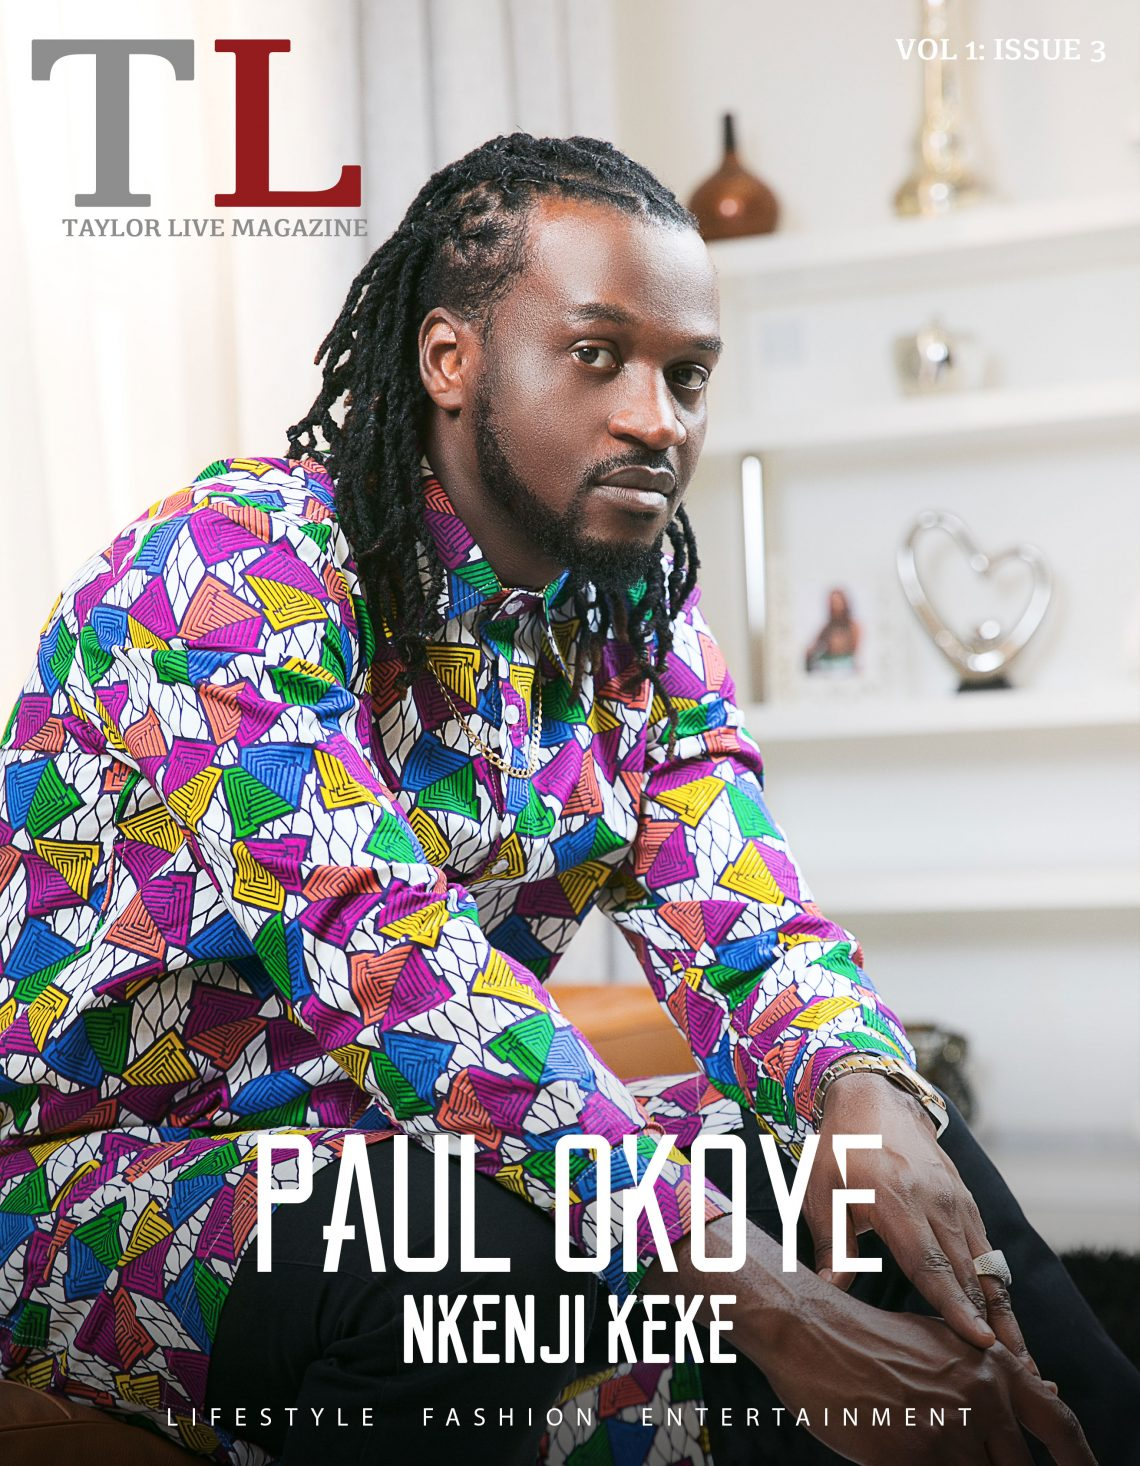 Nkenji Keke! Paul Okoye Covers Taylor Live Magazine's Latest Issue